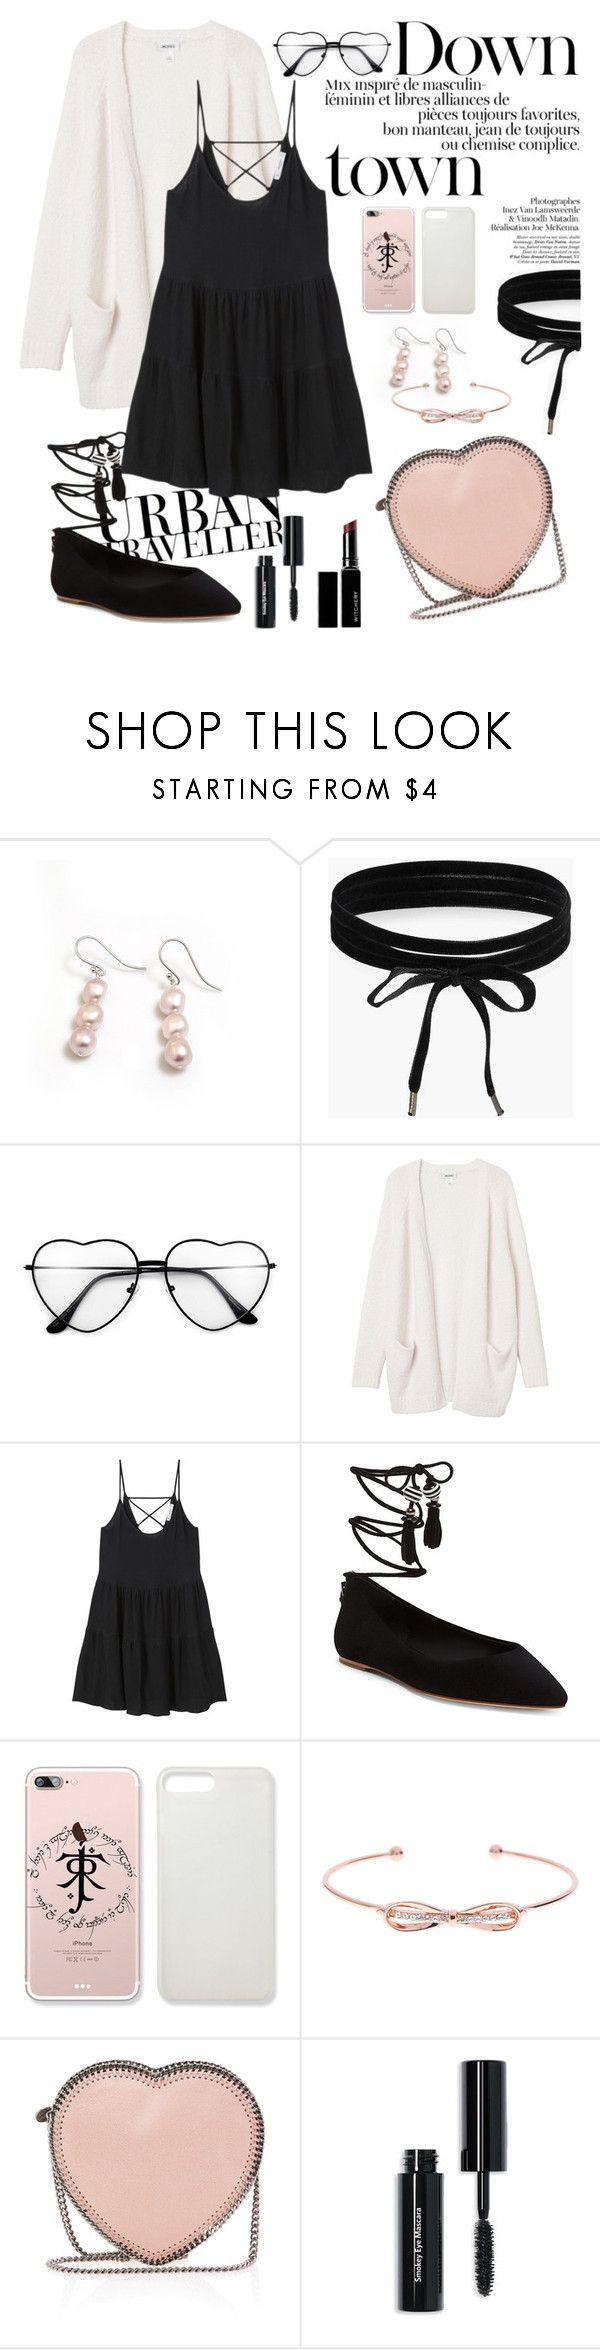 """Little black Dress"" by leanatsumi ❤ liked on Polyvore featuring Hiho Silver, Boohoo, Monki, MANGO, B Brian Atwood, Ted Baker, STELLA McCARTNEY, Bobbi Brown Cosmetics and Witchery"